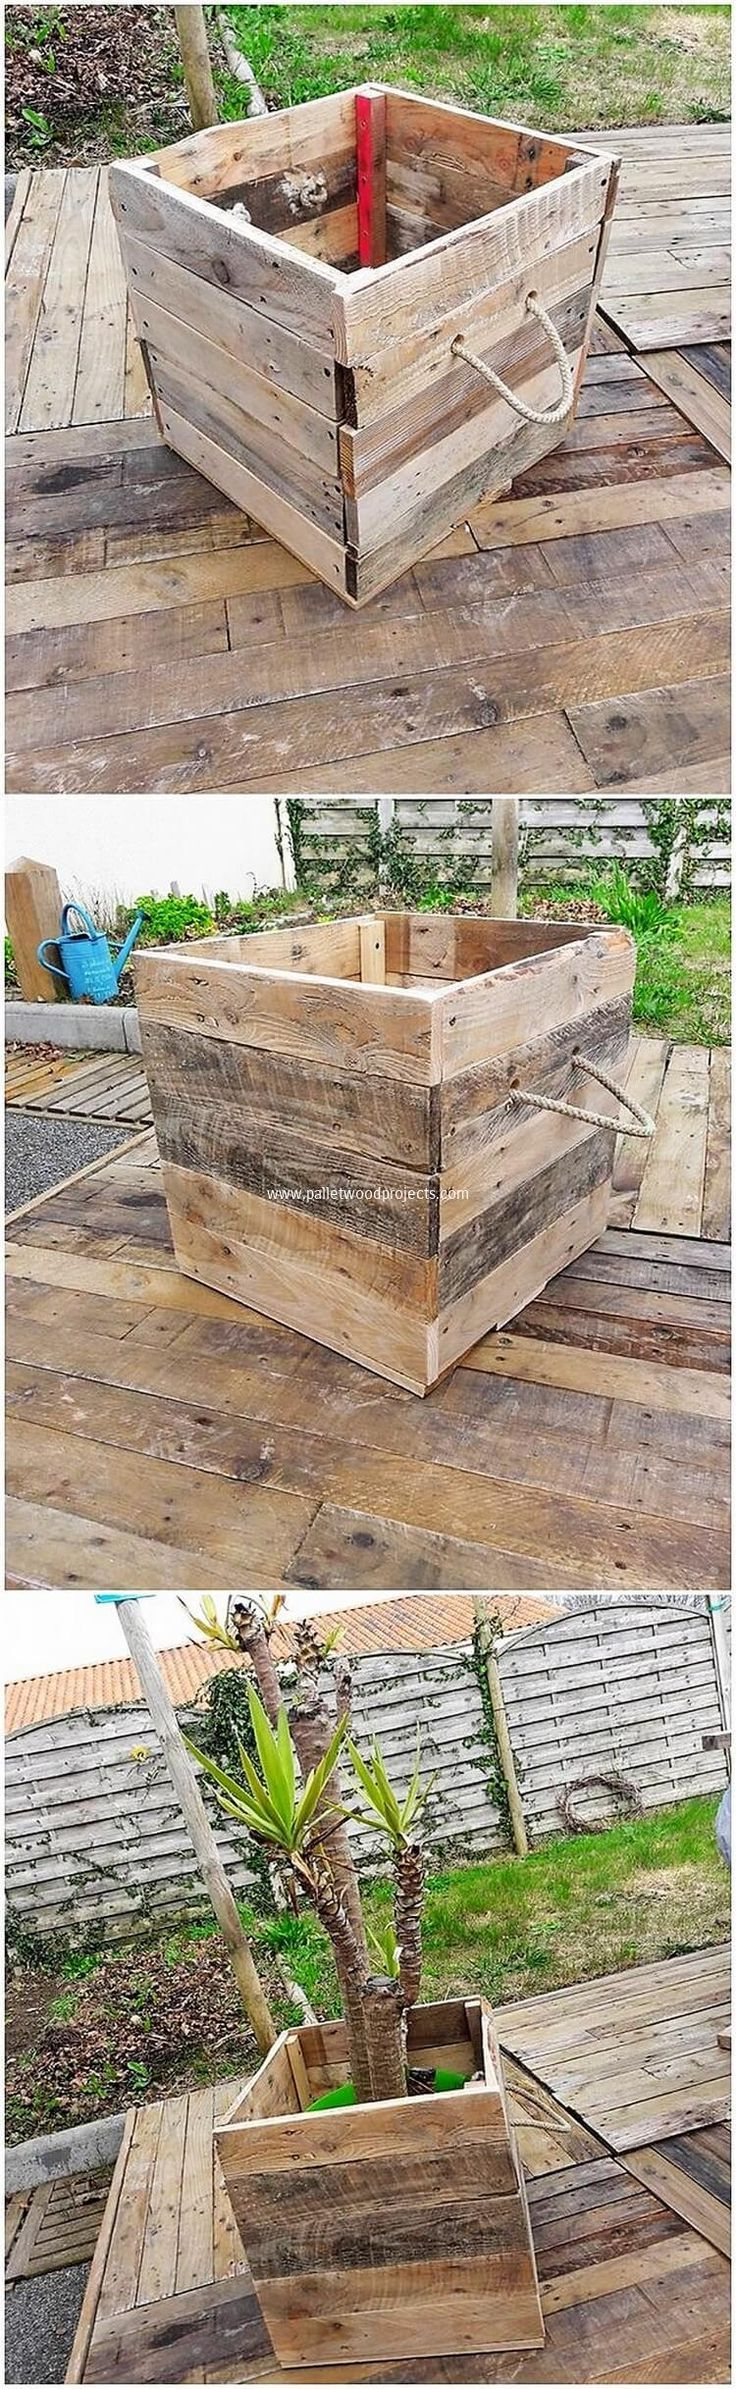 Remarkable Wood Pallets Recycling Ideas | Wood pallet ...